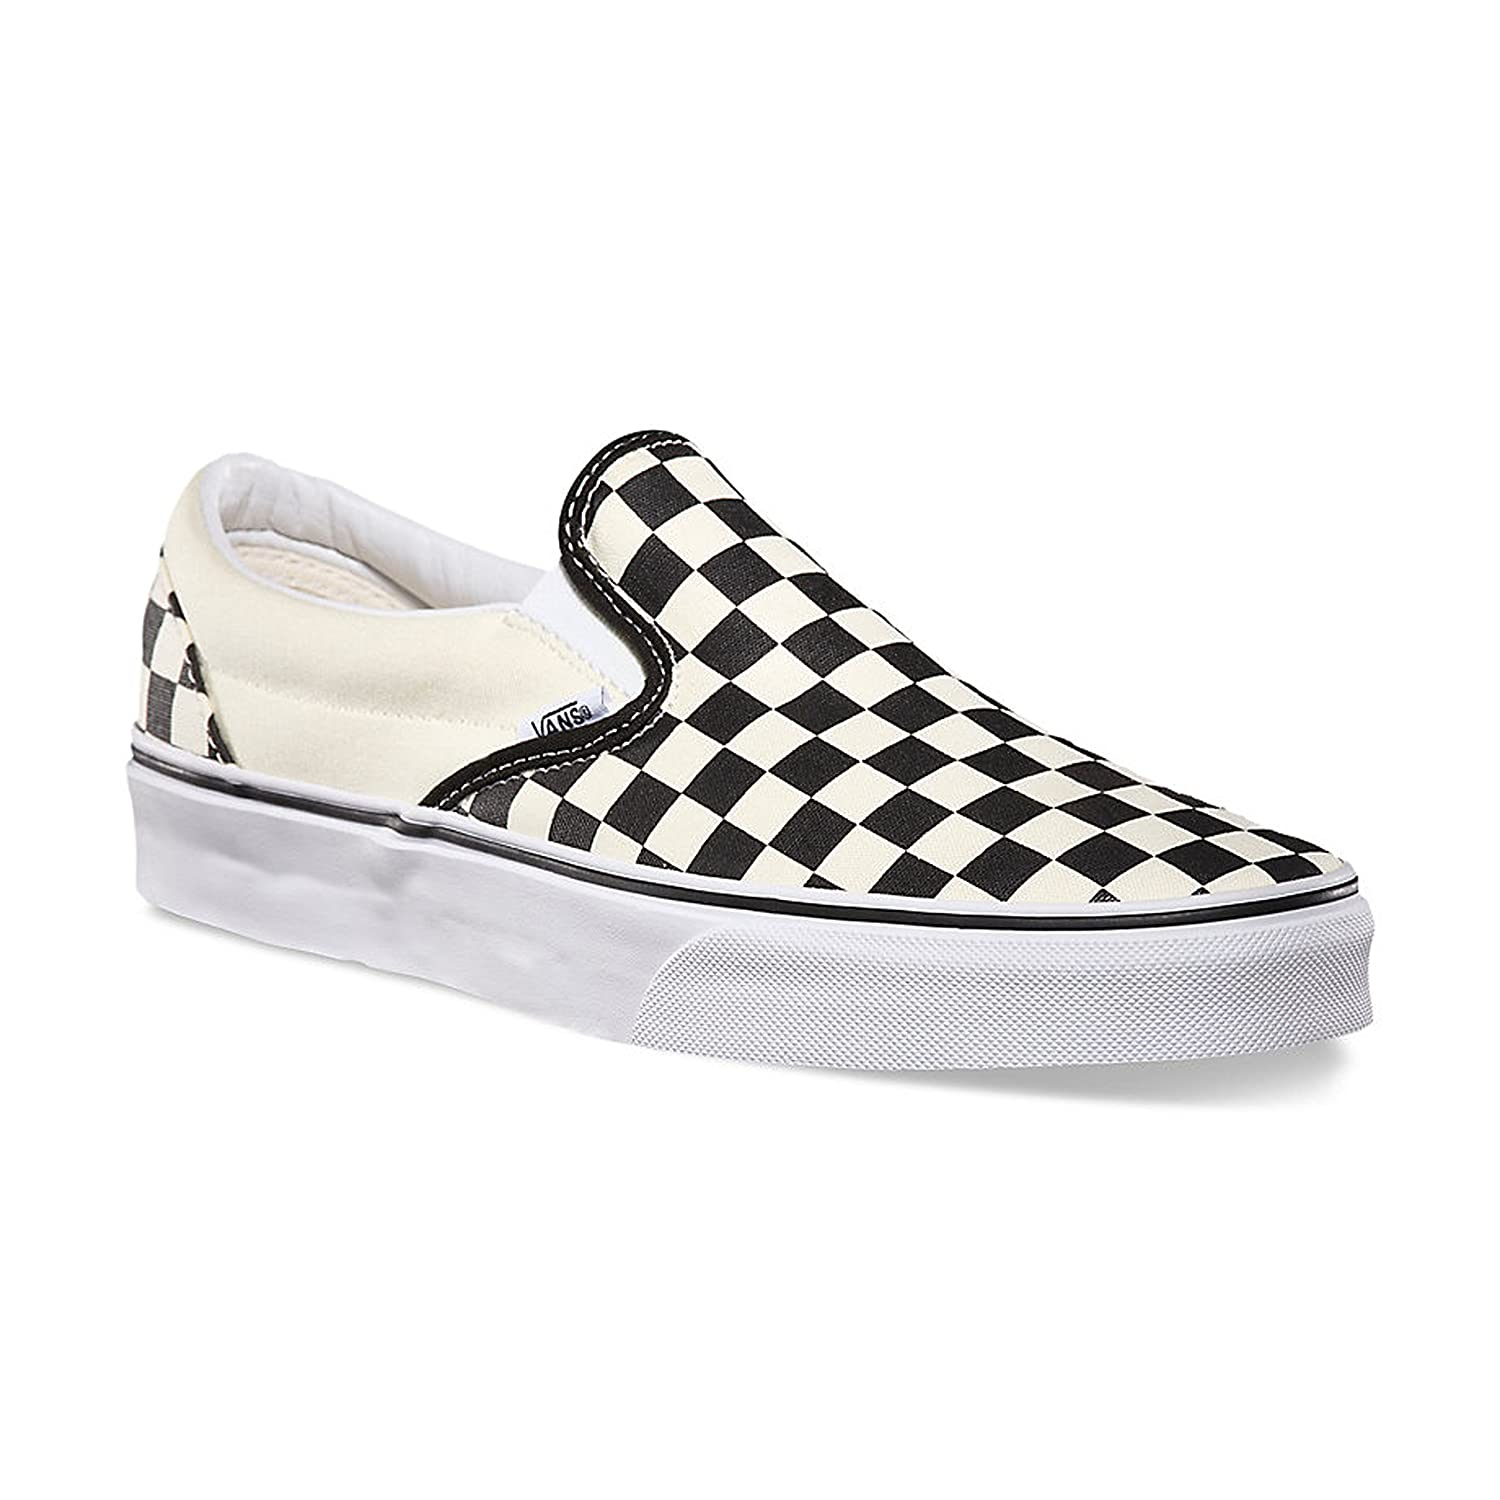 [バンズ] VANS スニーカー Classic Slip-on B0753ZZDS1 14.5 B(M) US Women / 13 D(M) US Men Black Off White Checkerboard